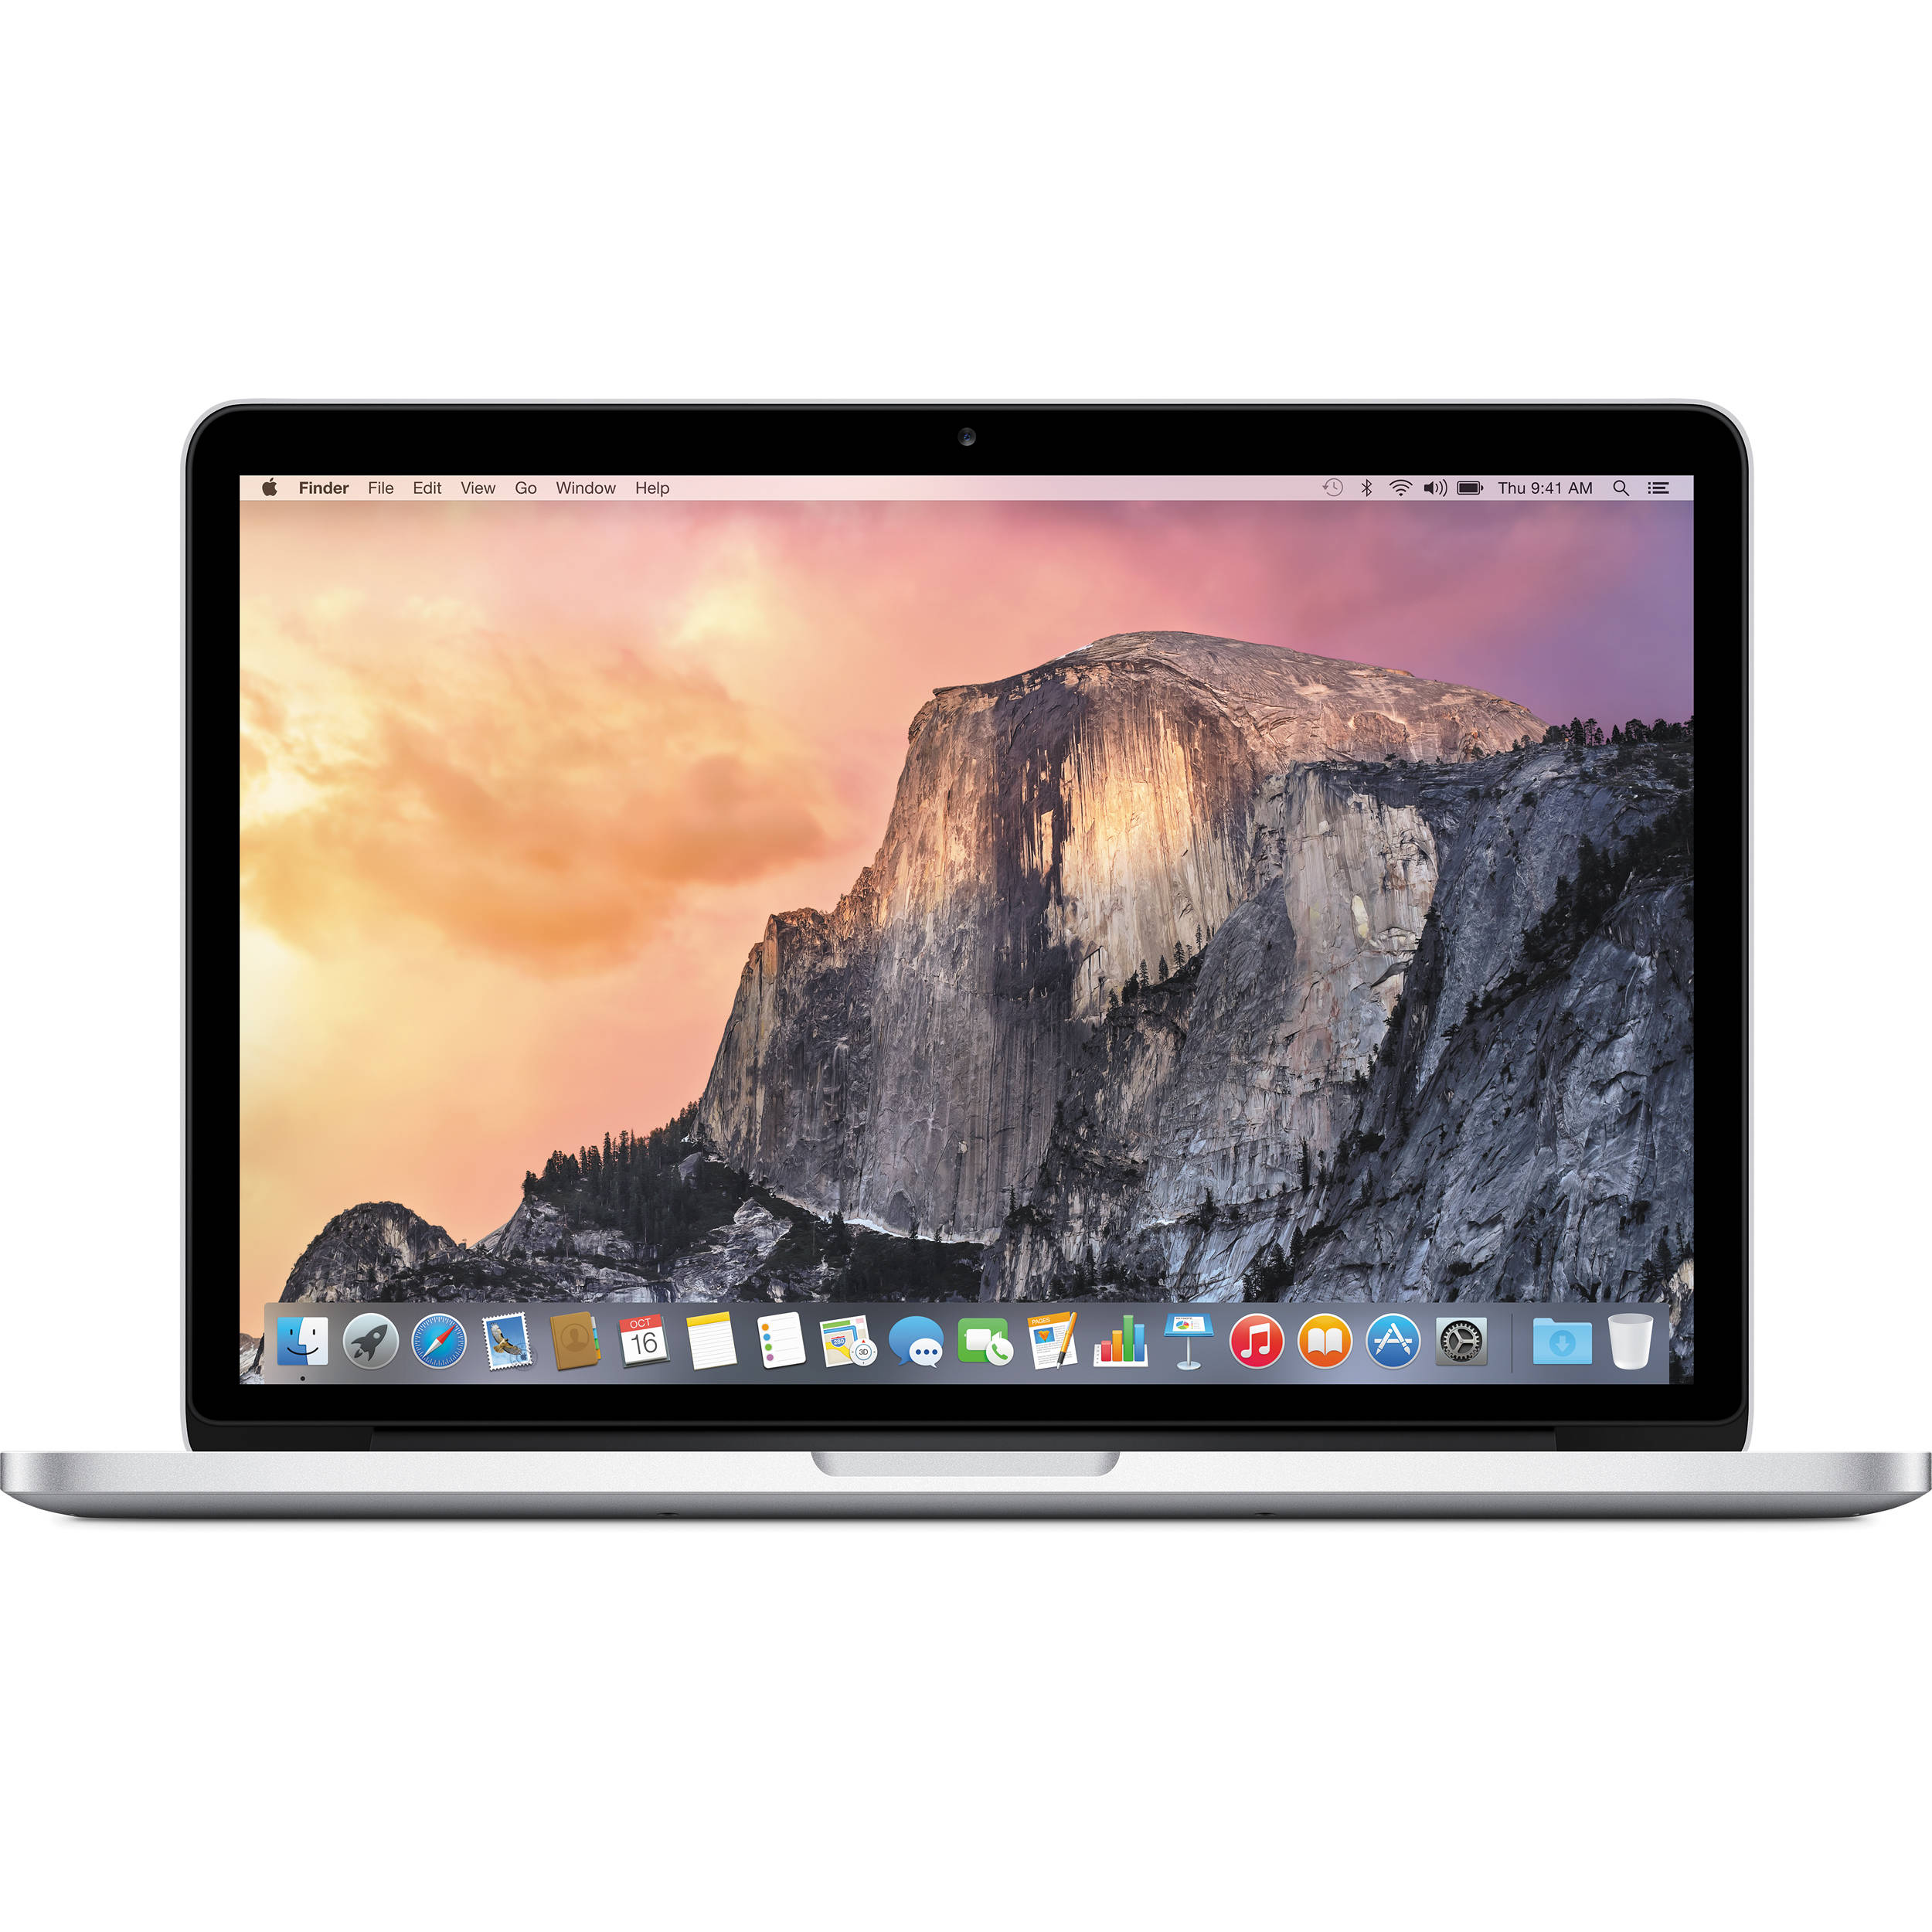 Should I get a Macbook (white) and save money or get a Macbook Pro for College.?